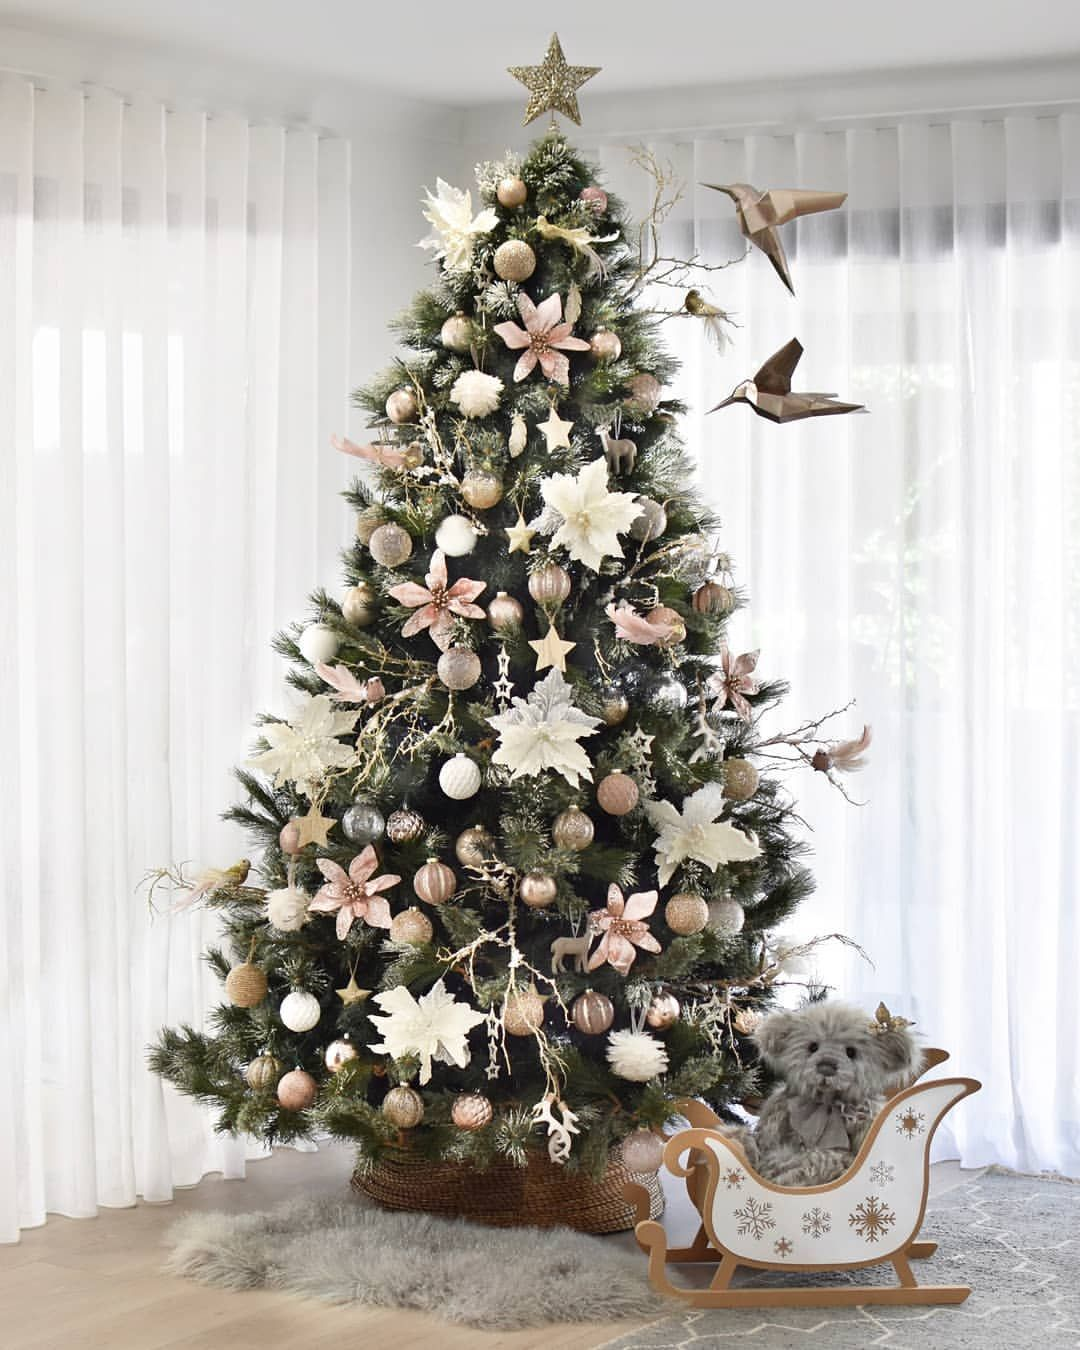 Bed Bath N Table On Instagram Promise Us You Won T Get Your Tinsel In A Tangle But Floral Christmas Tree Christmas Tree Inspiration Christmas Tree Flowers